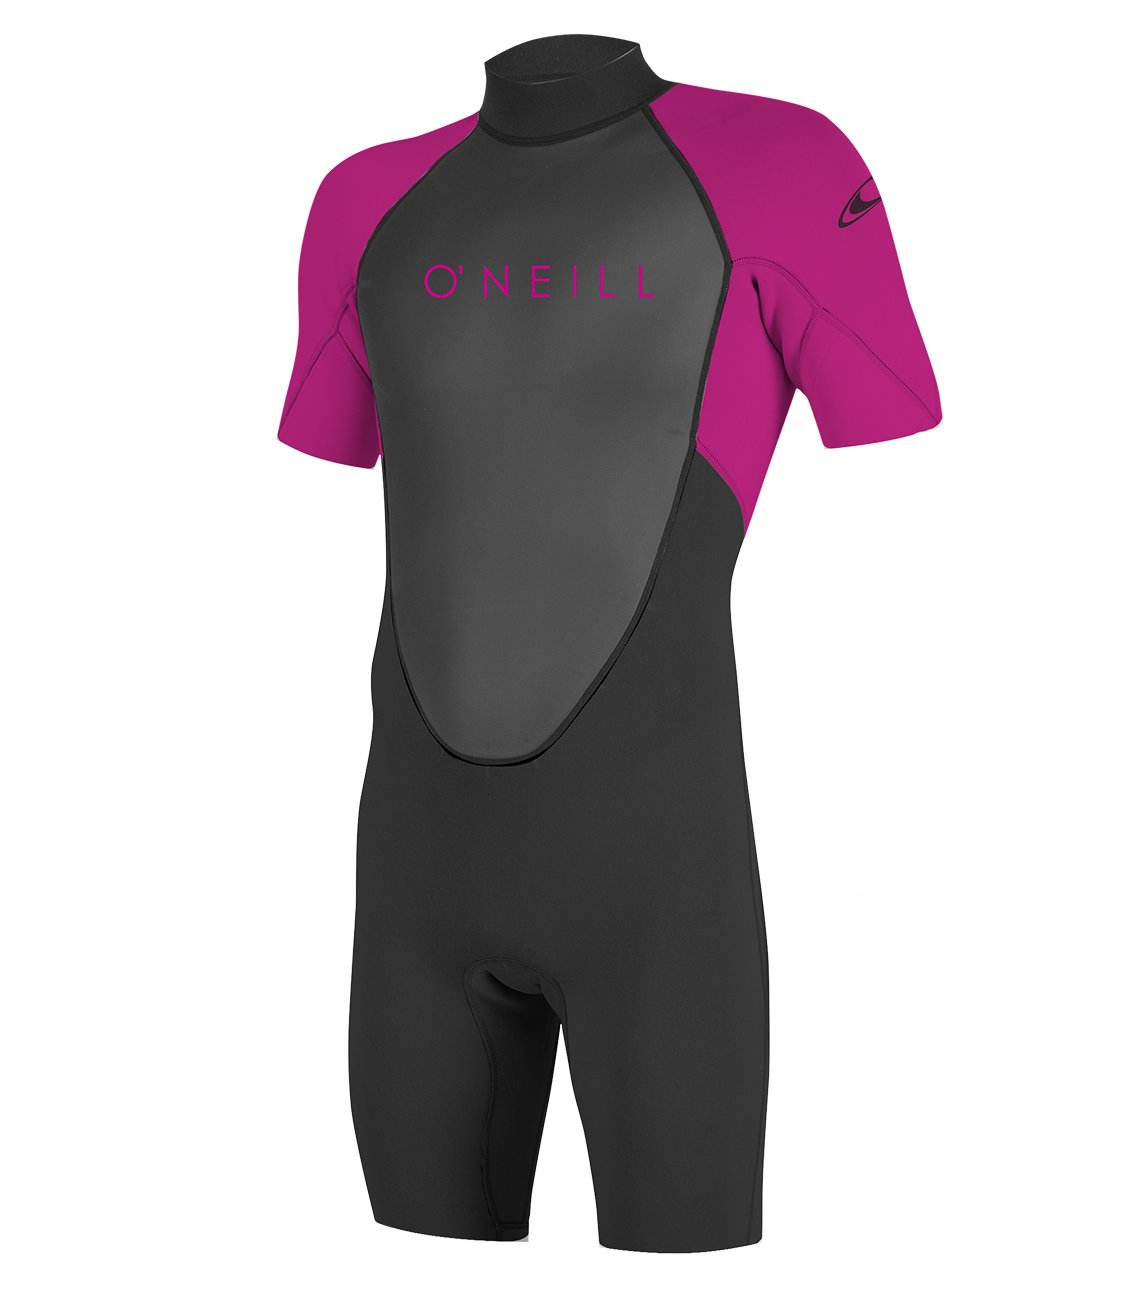 O'Neill Youth Reactor-2 2mm Back Zip Short Sleeve Spring Wetsuit, Black/Berry, 4 by O'Neill Wetsuits (Image #1)